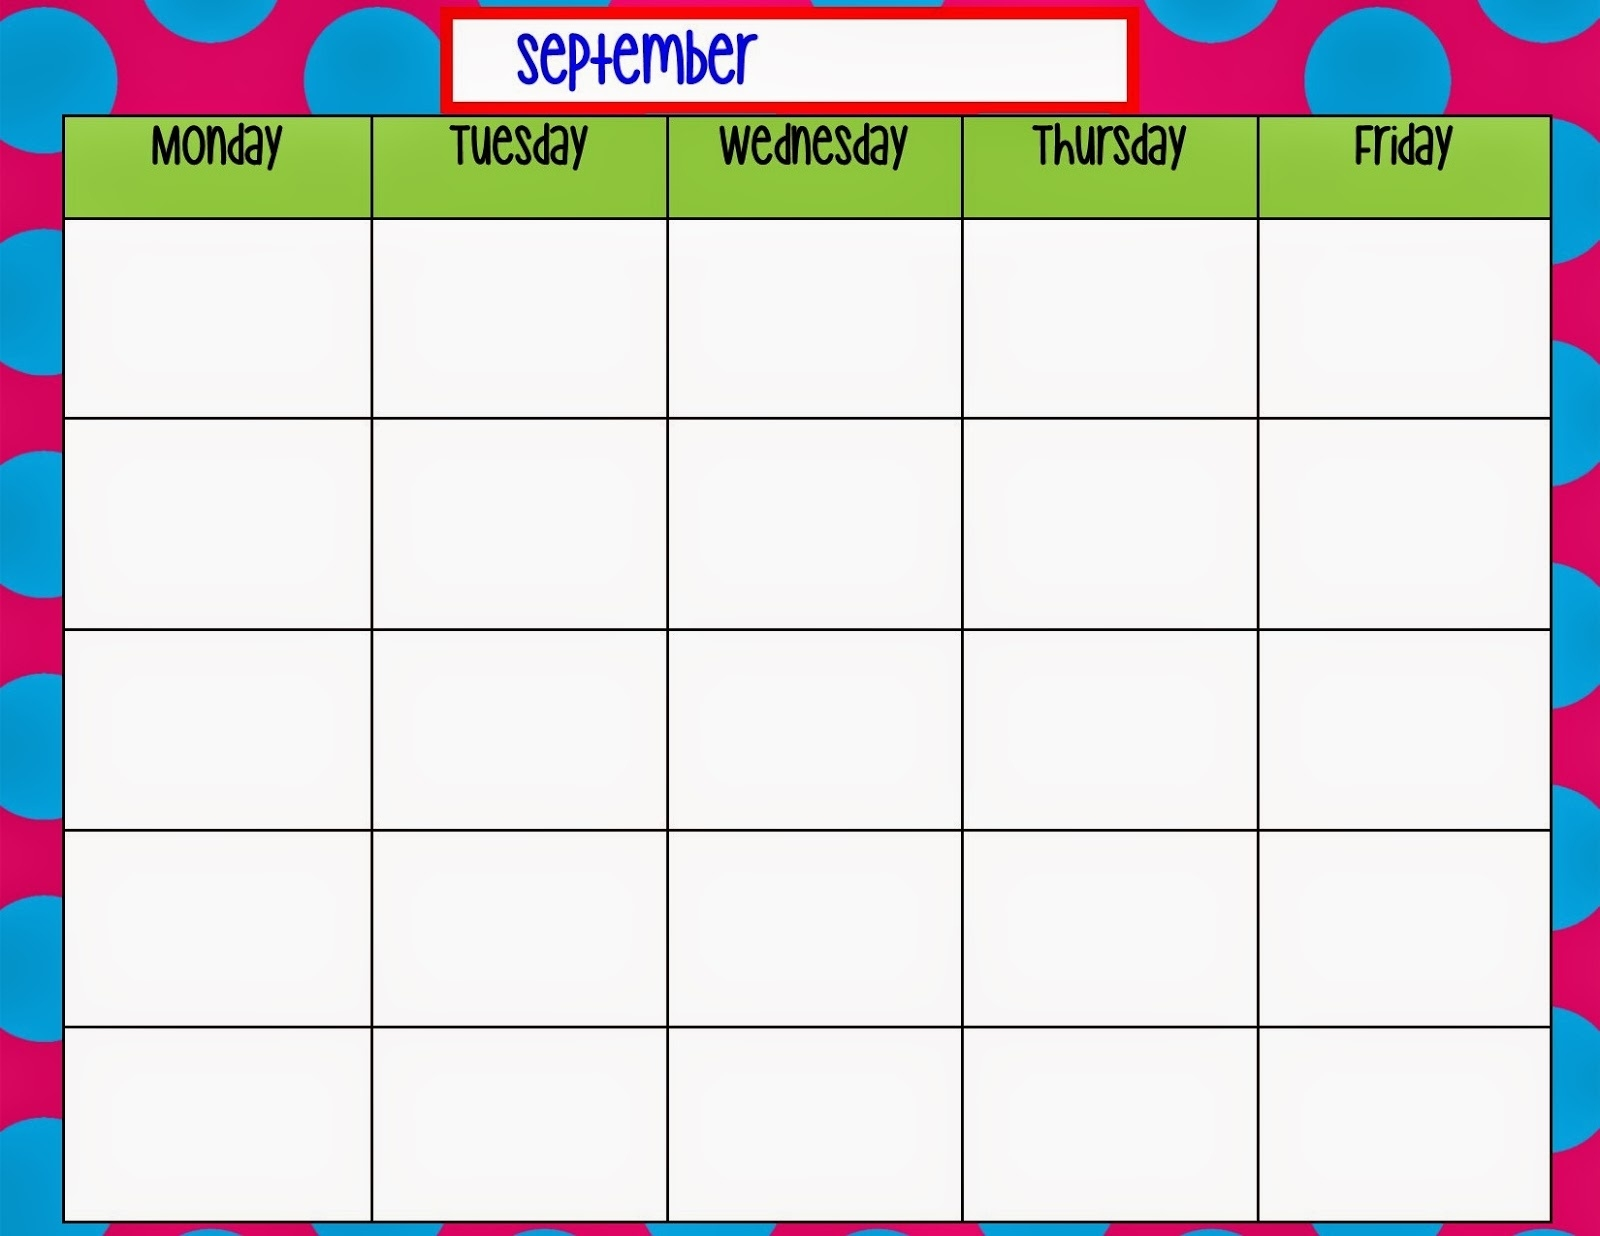 Monday Through Friday Schedule Template Free   Calendar 2018 Design  Monday Through Friday Schedule Template Free